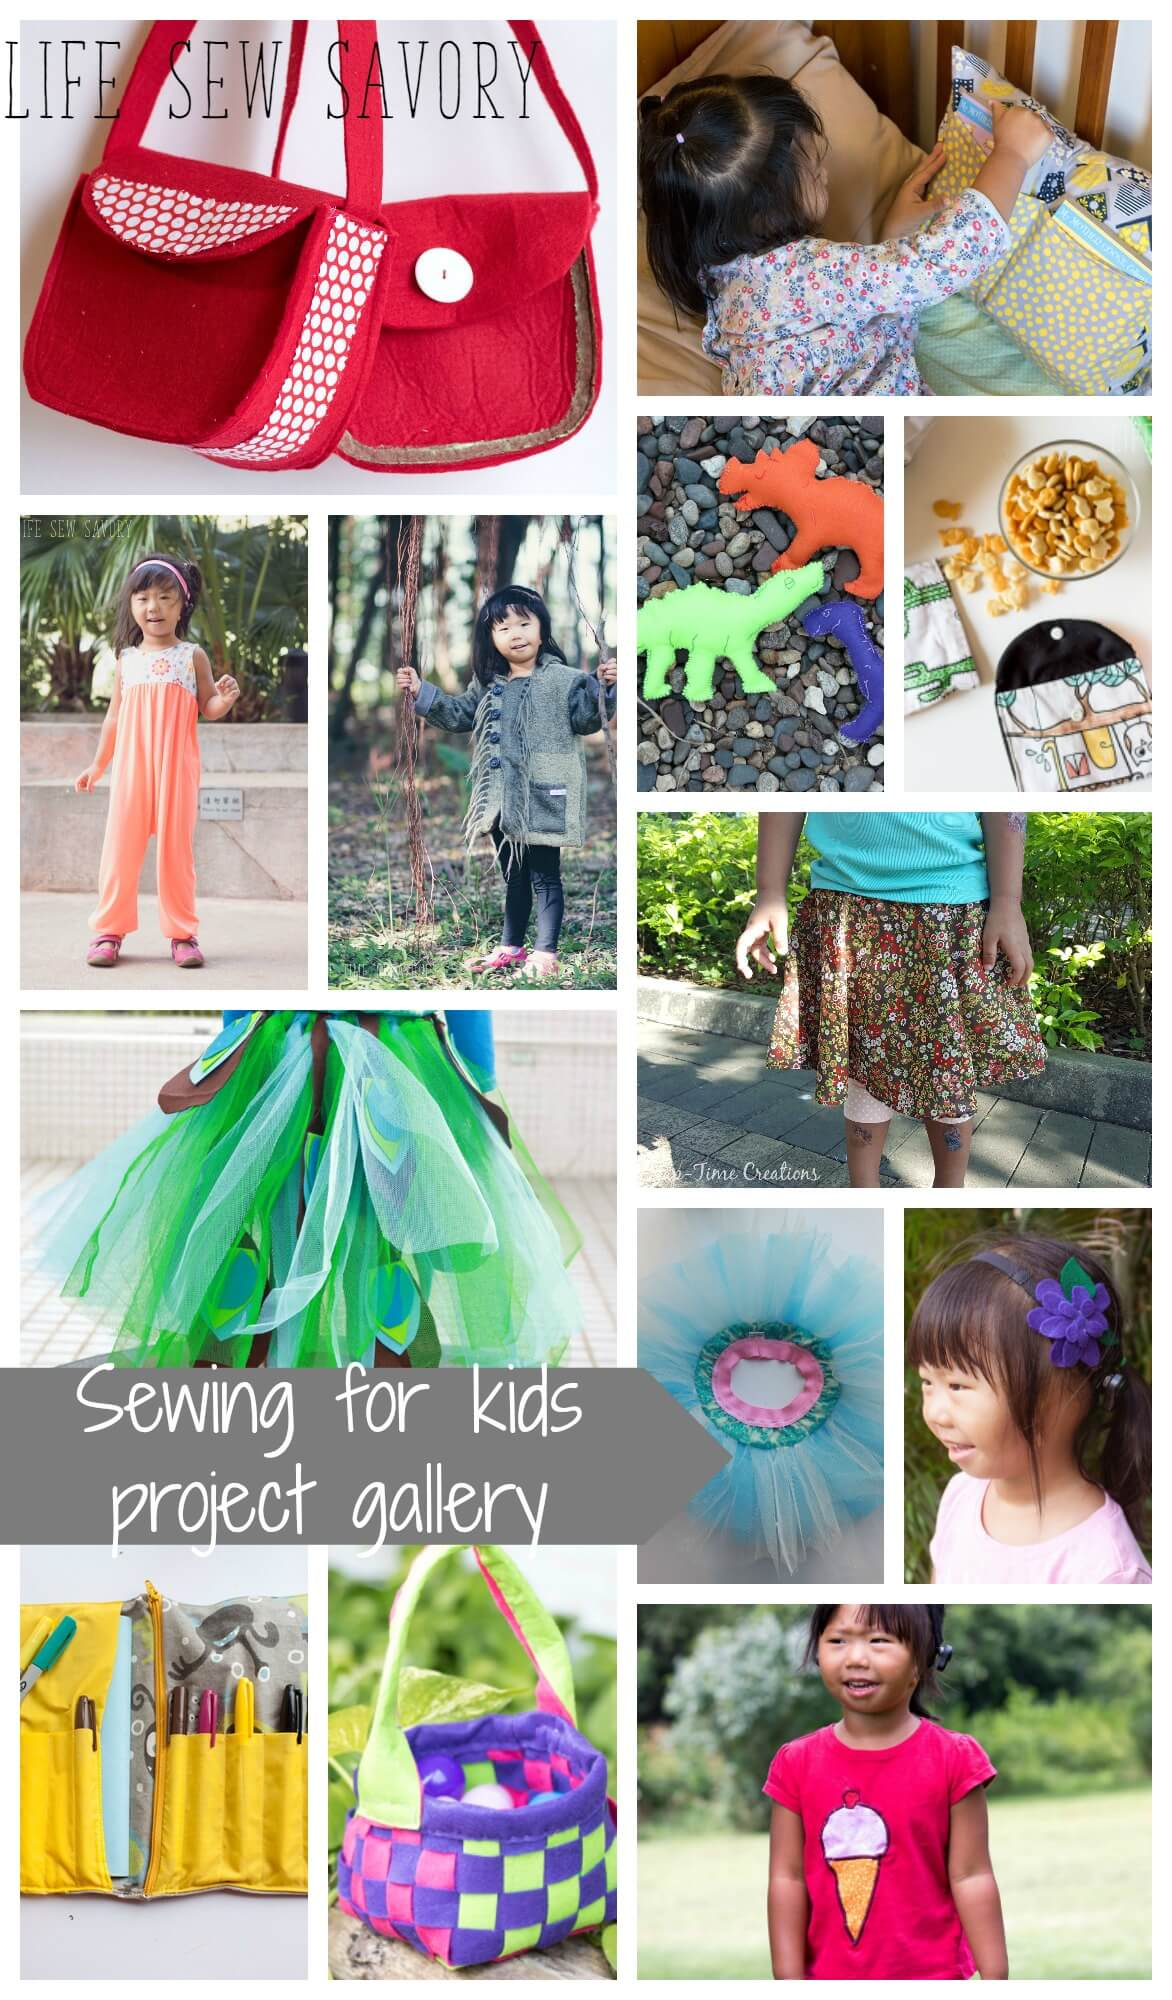 sewing for kids, projects, patterns, ideas and inspiration for sewing